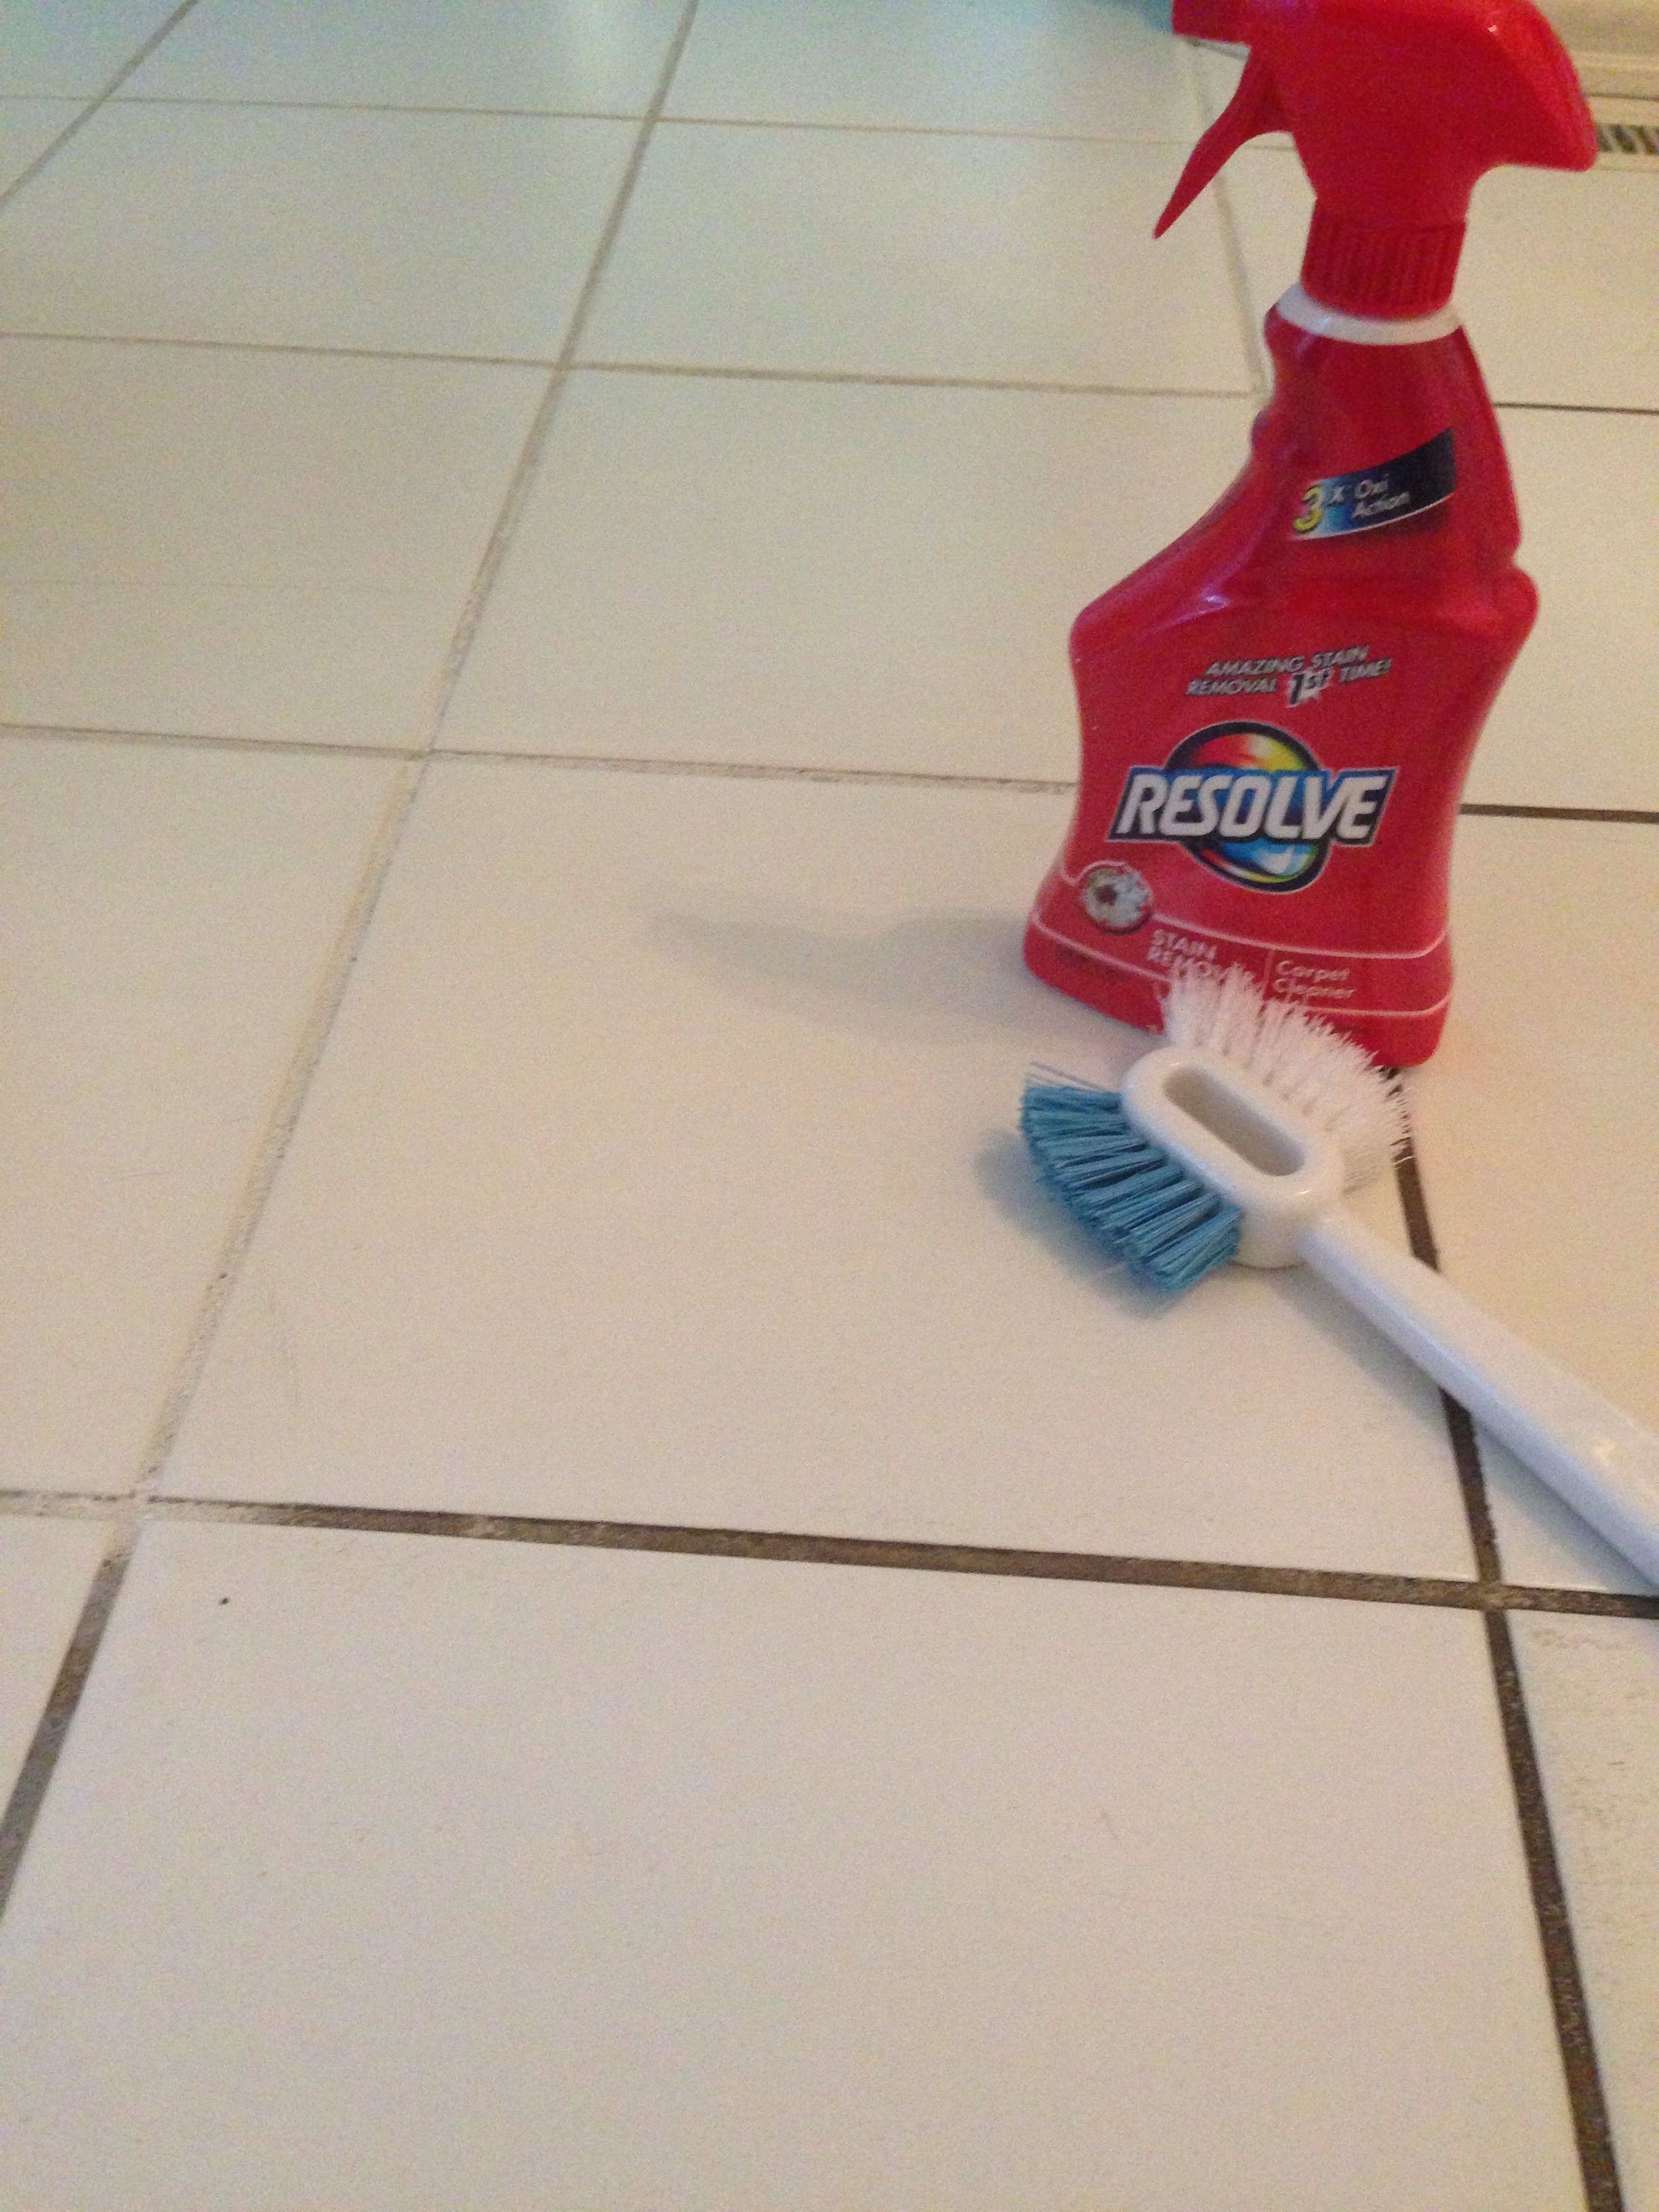 Resolve carpet cleaner to clean grout Hydrogen peroxide Grout